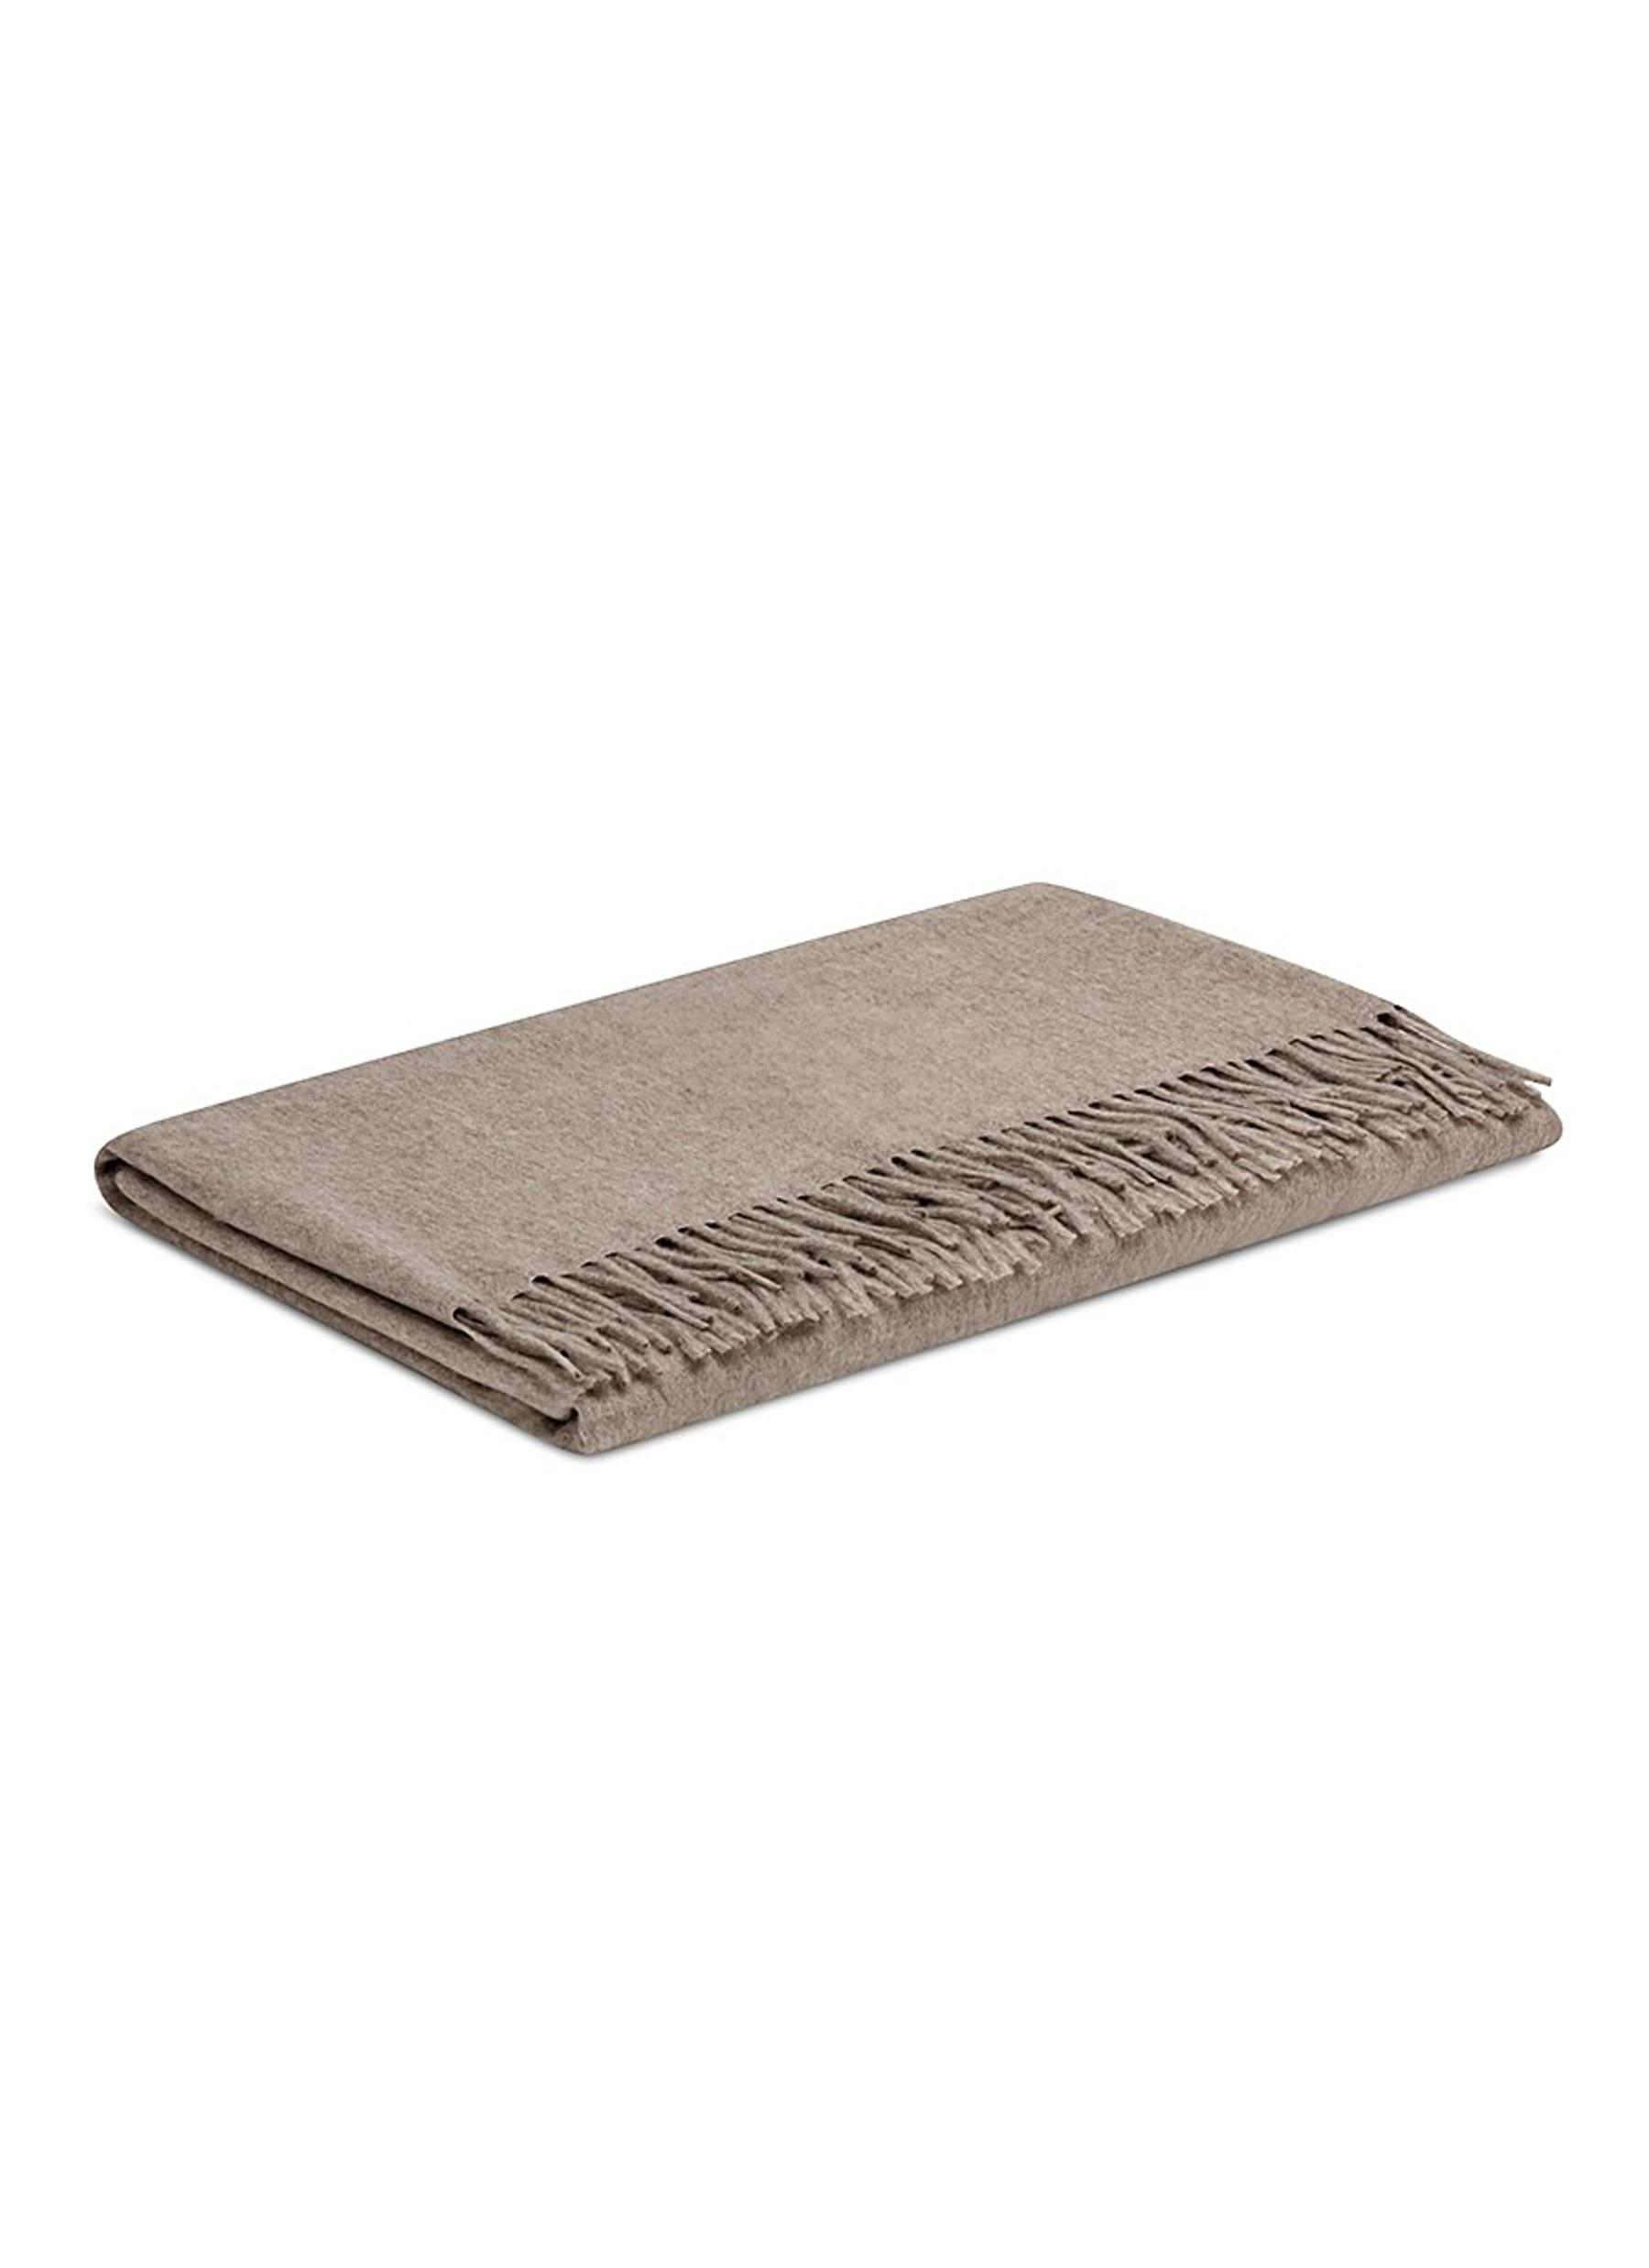 2a71653f36746 Frette Bliss Cashmere Throw in Natural - Lyst